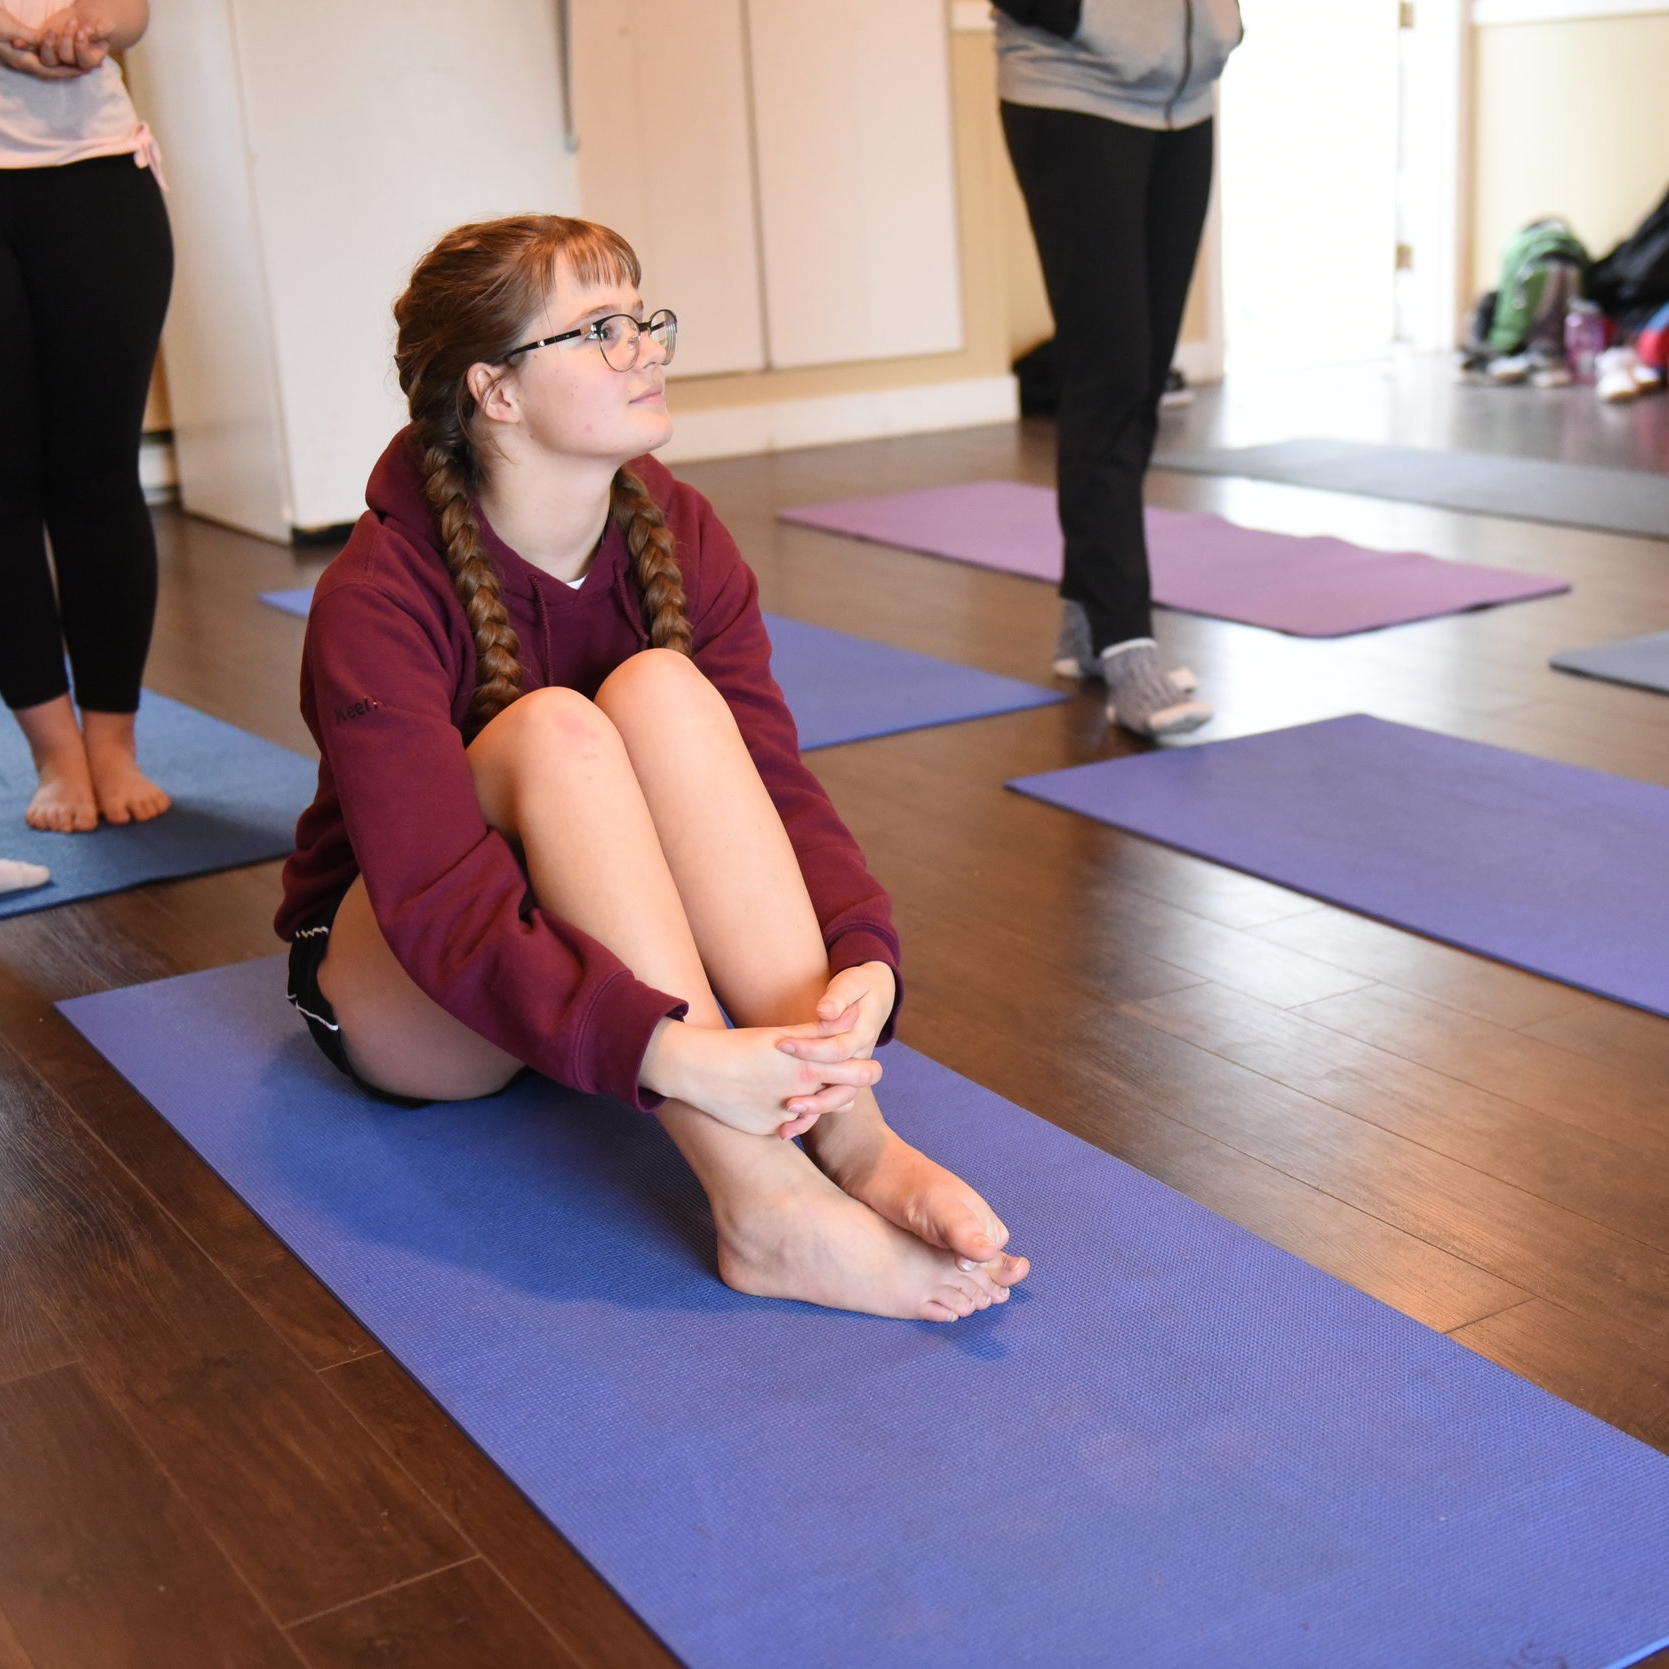 A student sits in the yoga studio, contemplating the new skills she has learned that day.